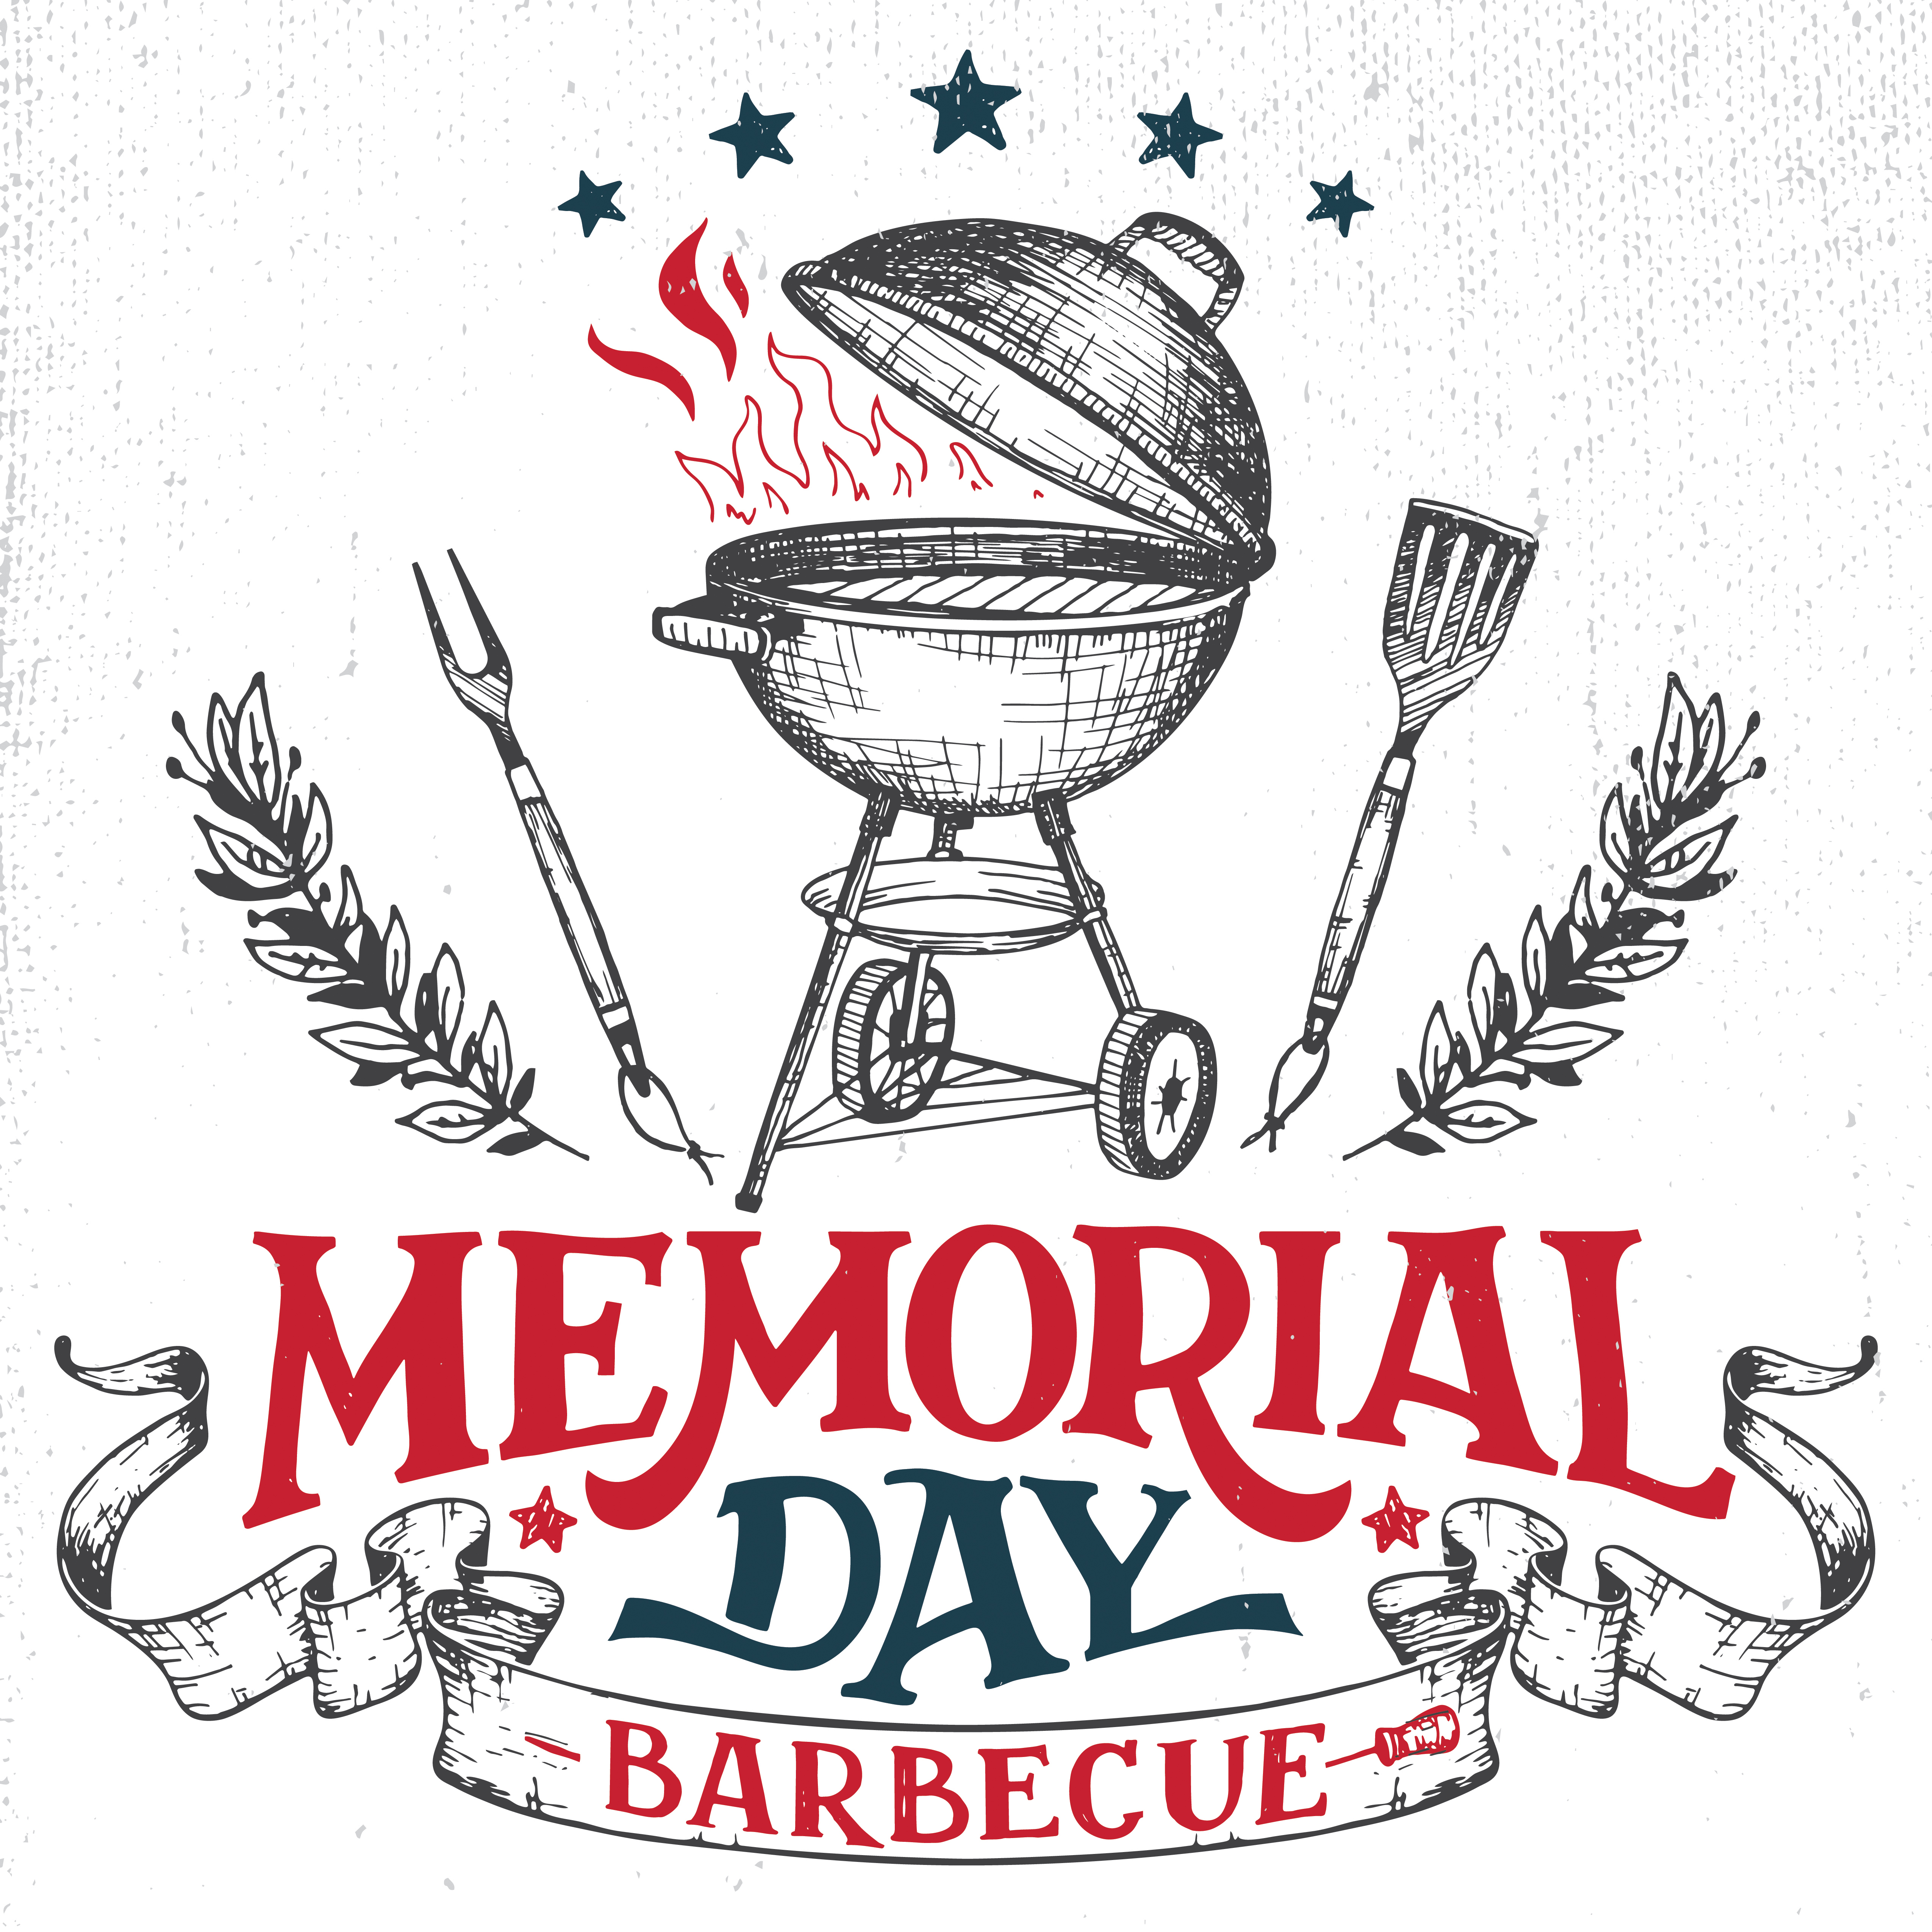 types of memorial day BBQ and snacks